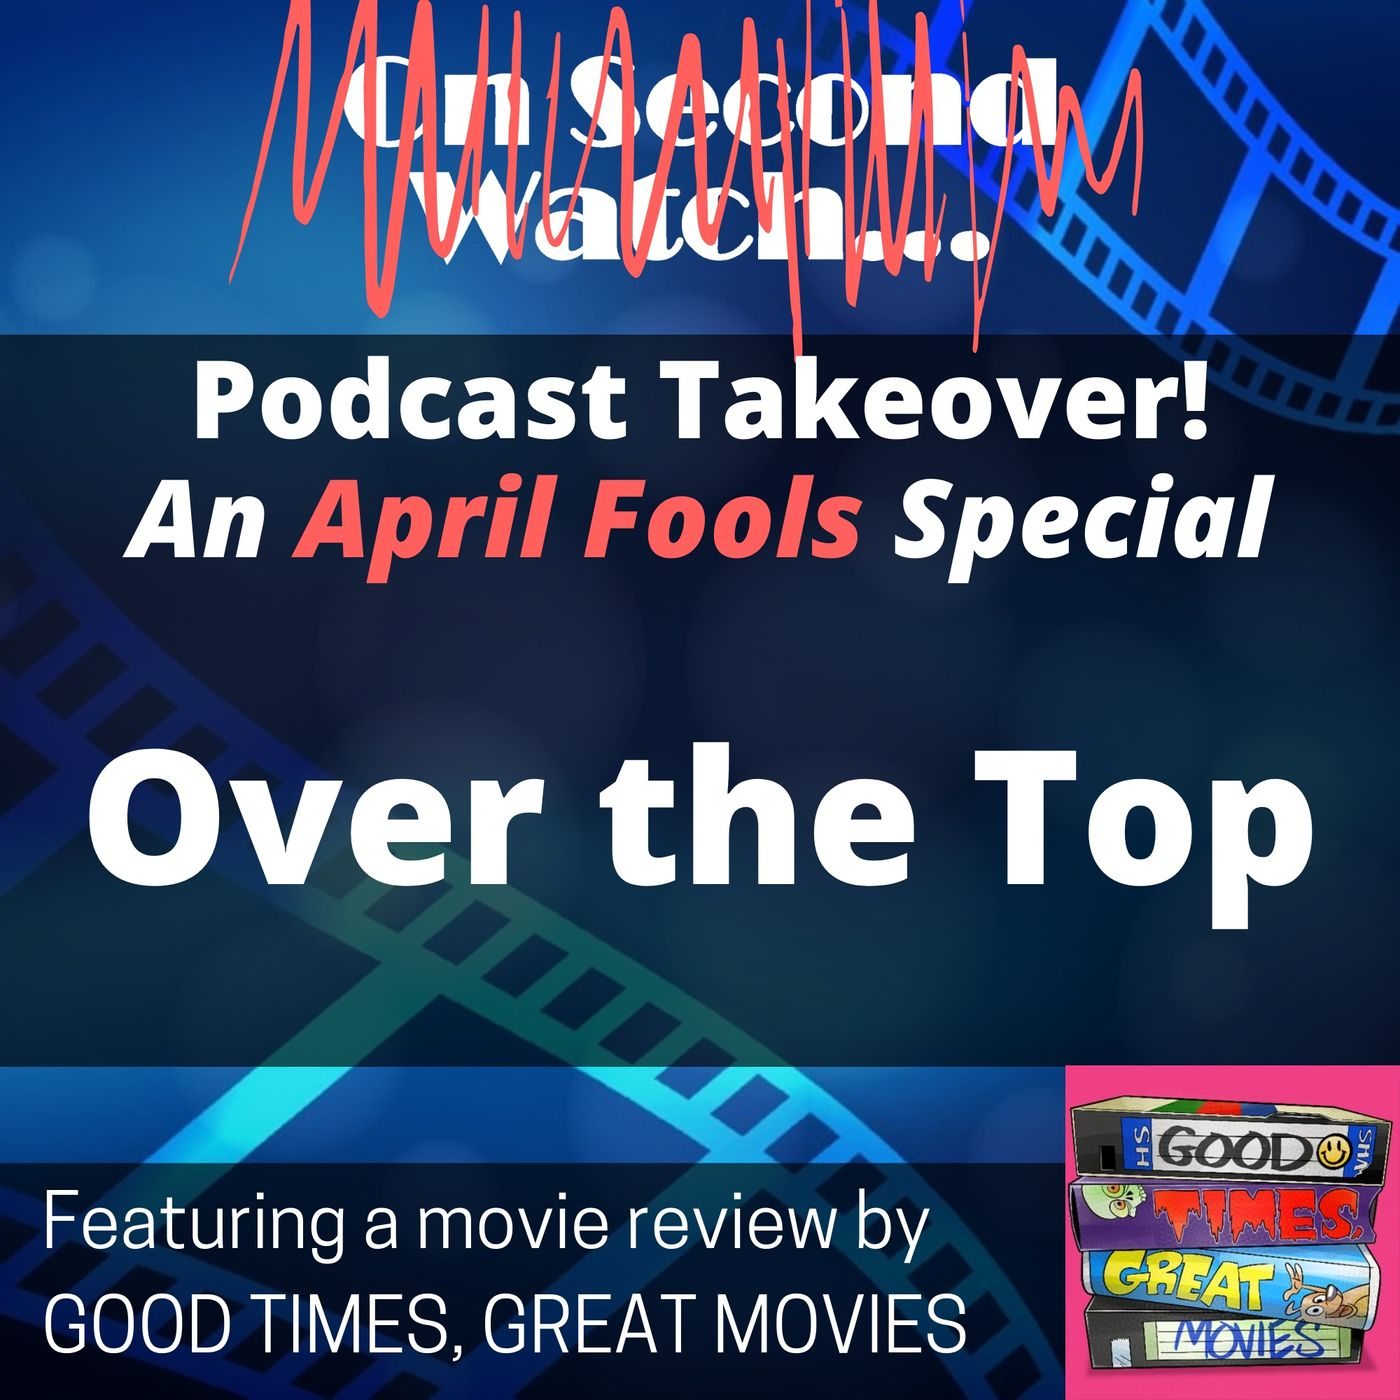 [PODCAST TAKEOVER] Over the Top (1987) | Good Times, Great Movies